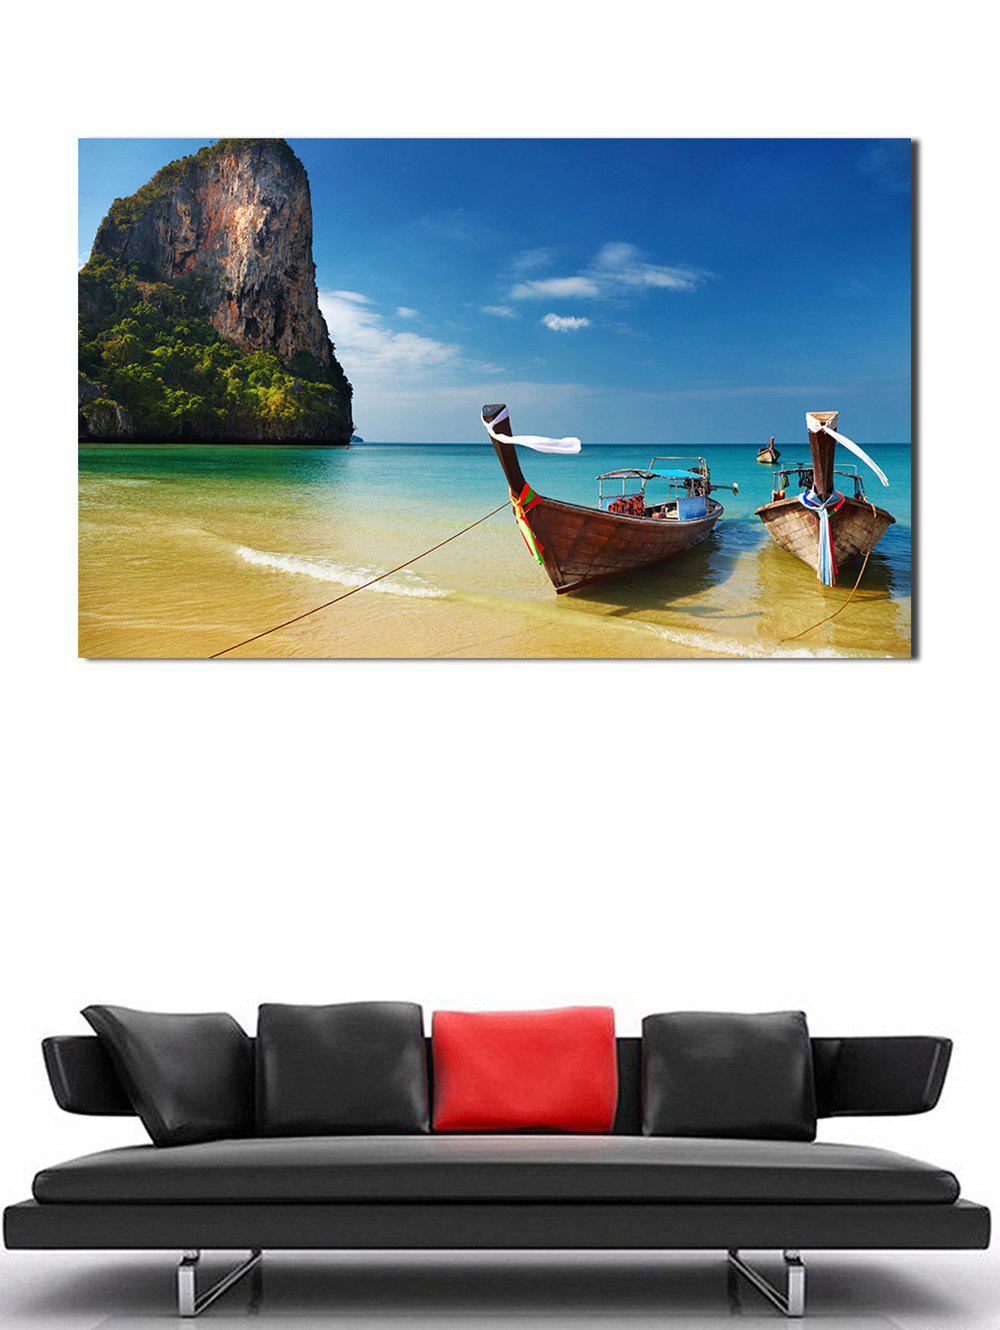 Trendy 3D Seaside Boat Beach Hanging Wall Art